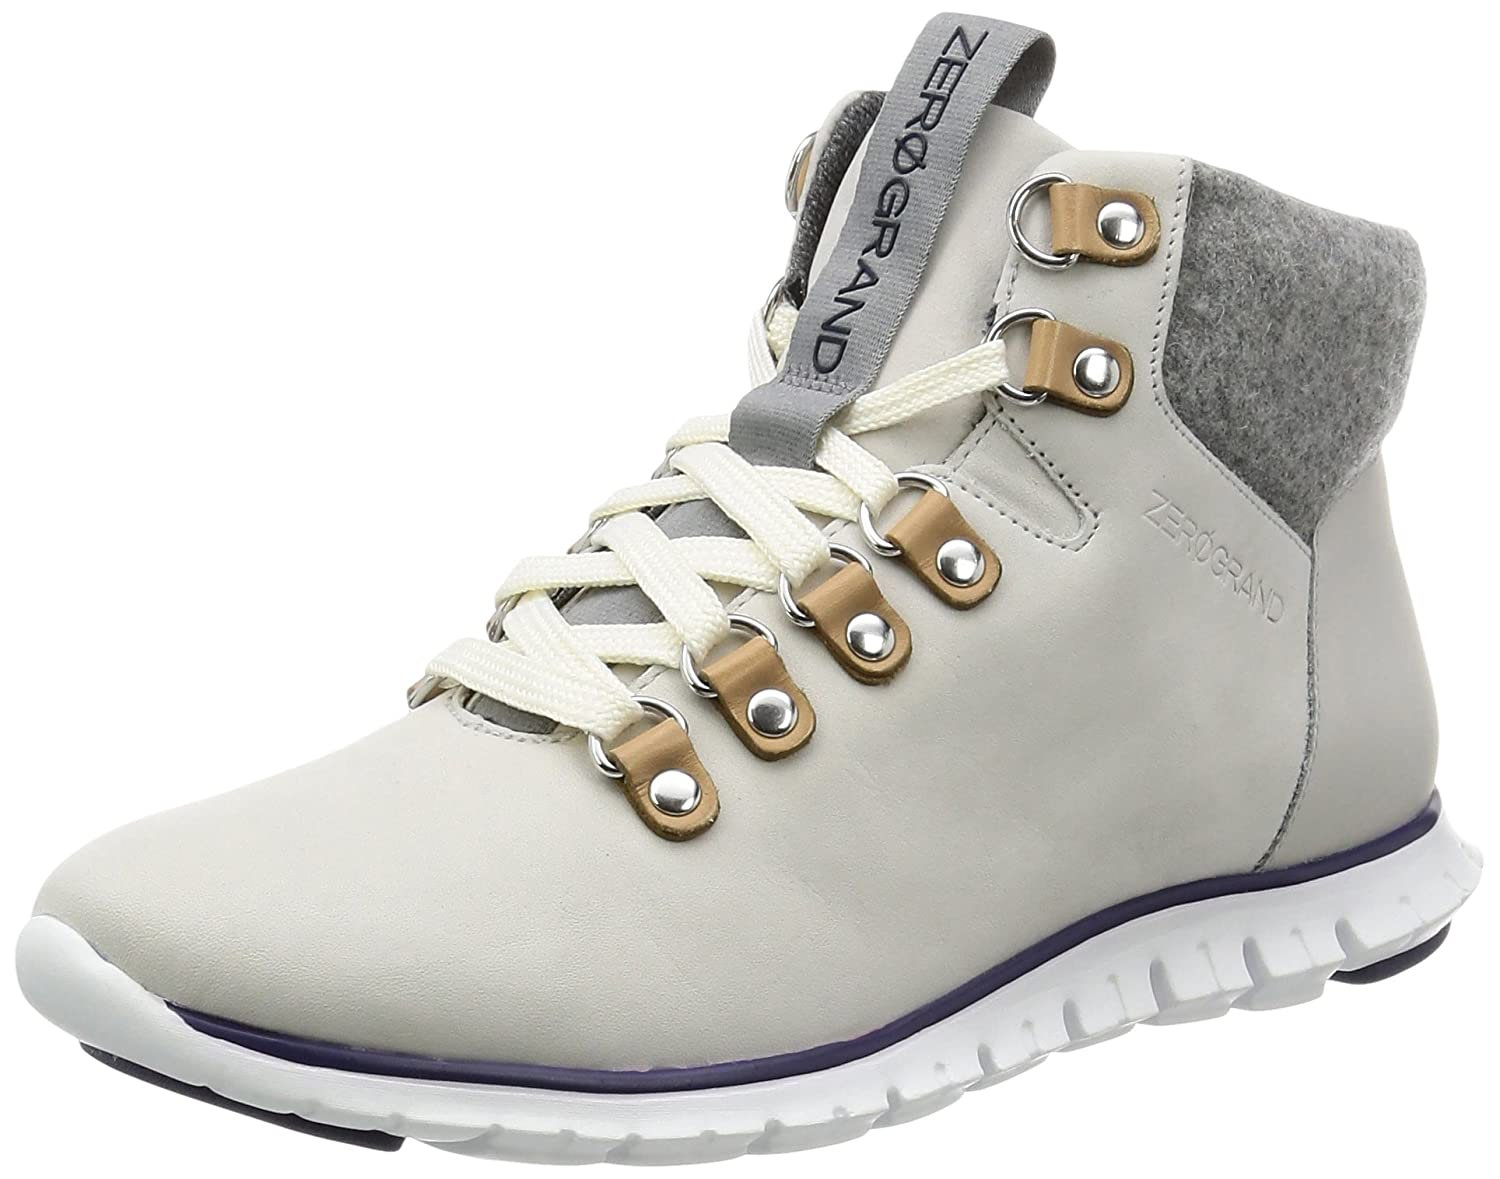 Cole Haan Women's Zerogrand Hikr Boot B01MTK54VF 5.5 B(M) US|Vapor Grey